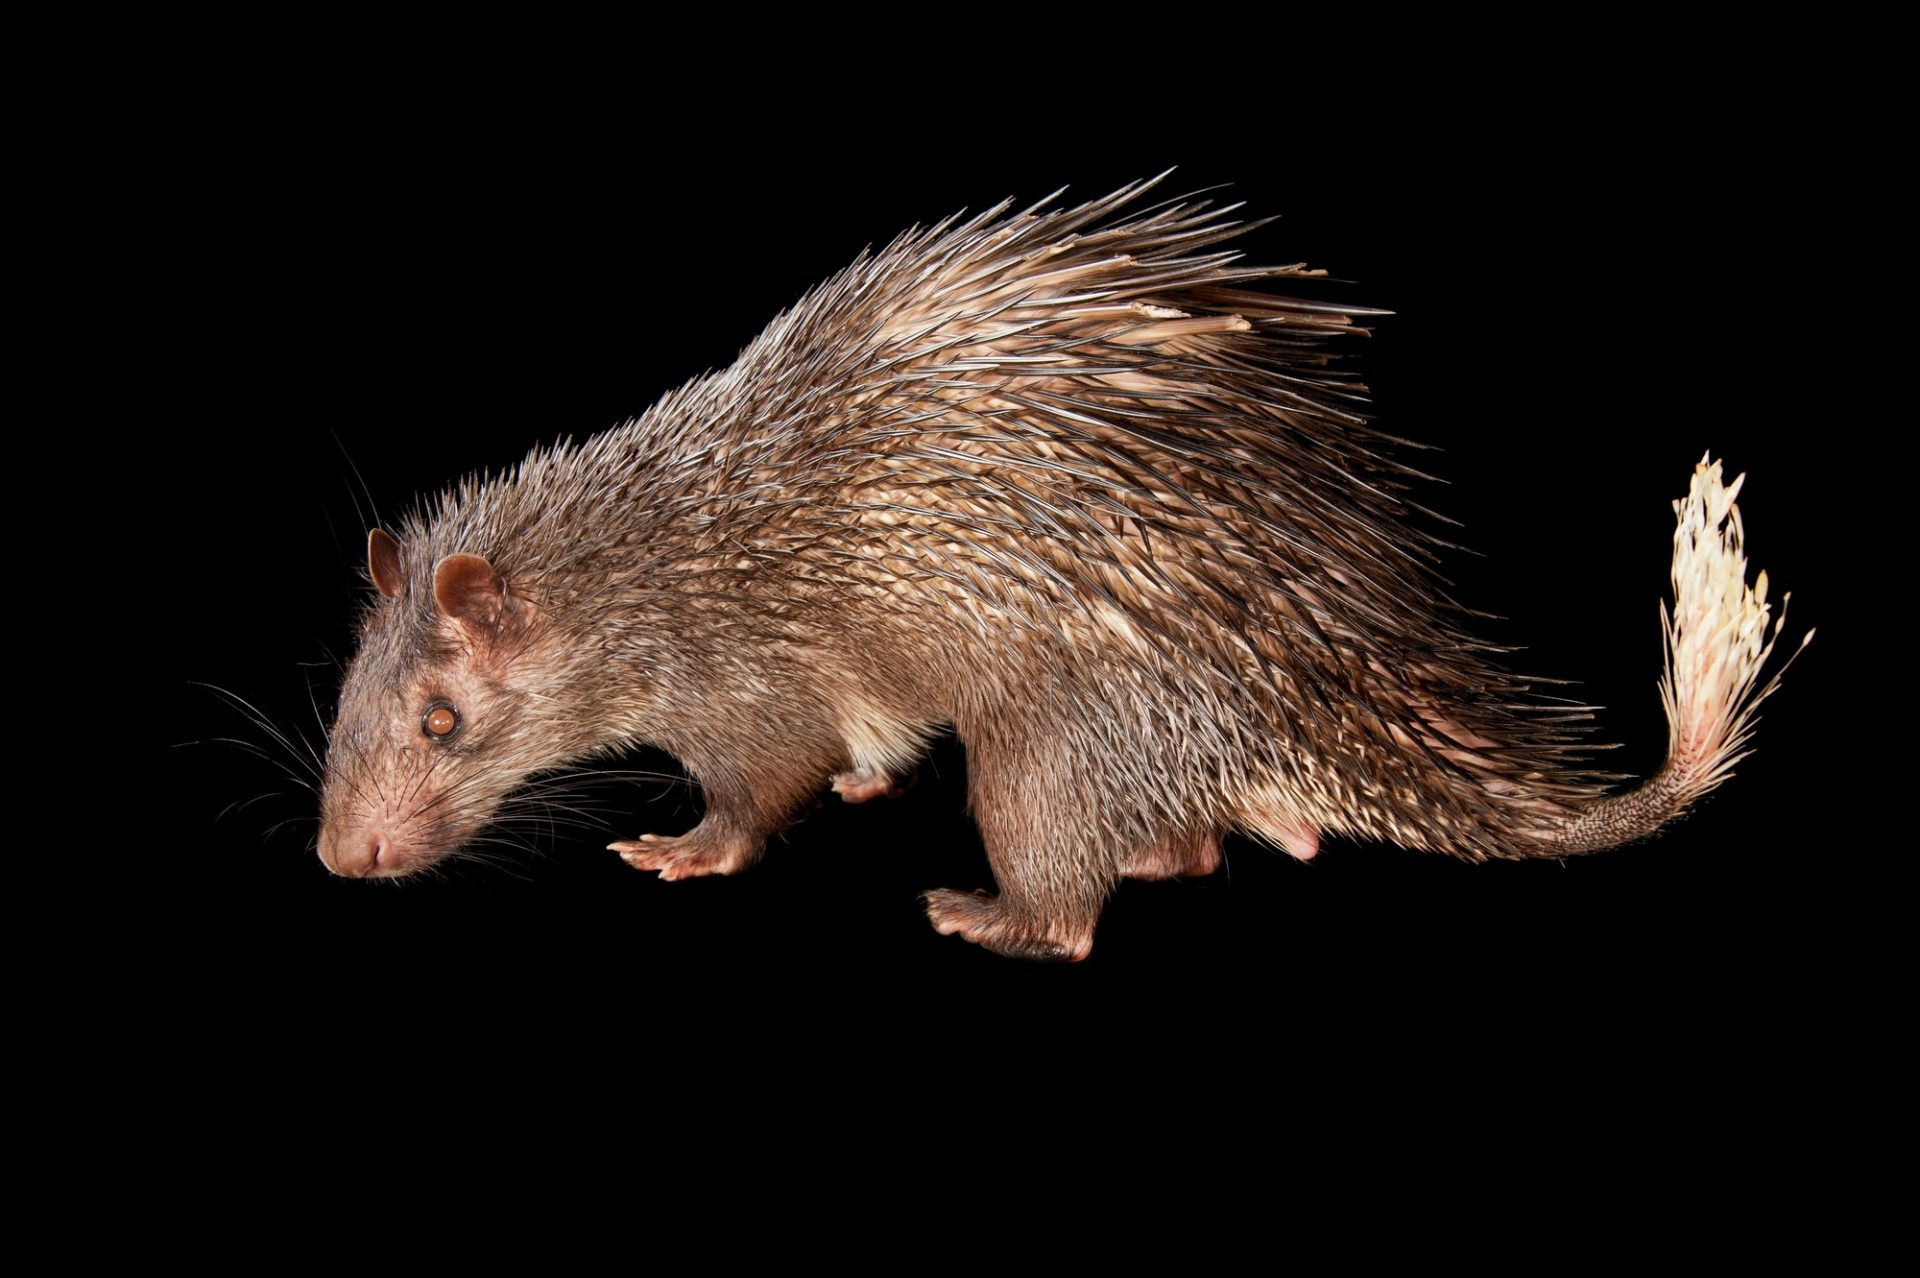 An African brush-tailed porcupine (Atherurus africanus) at the Omaha Zoo.